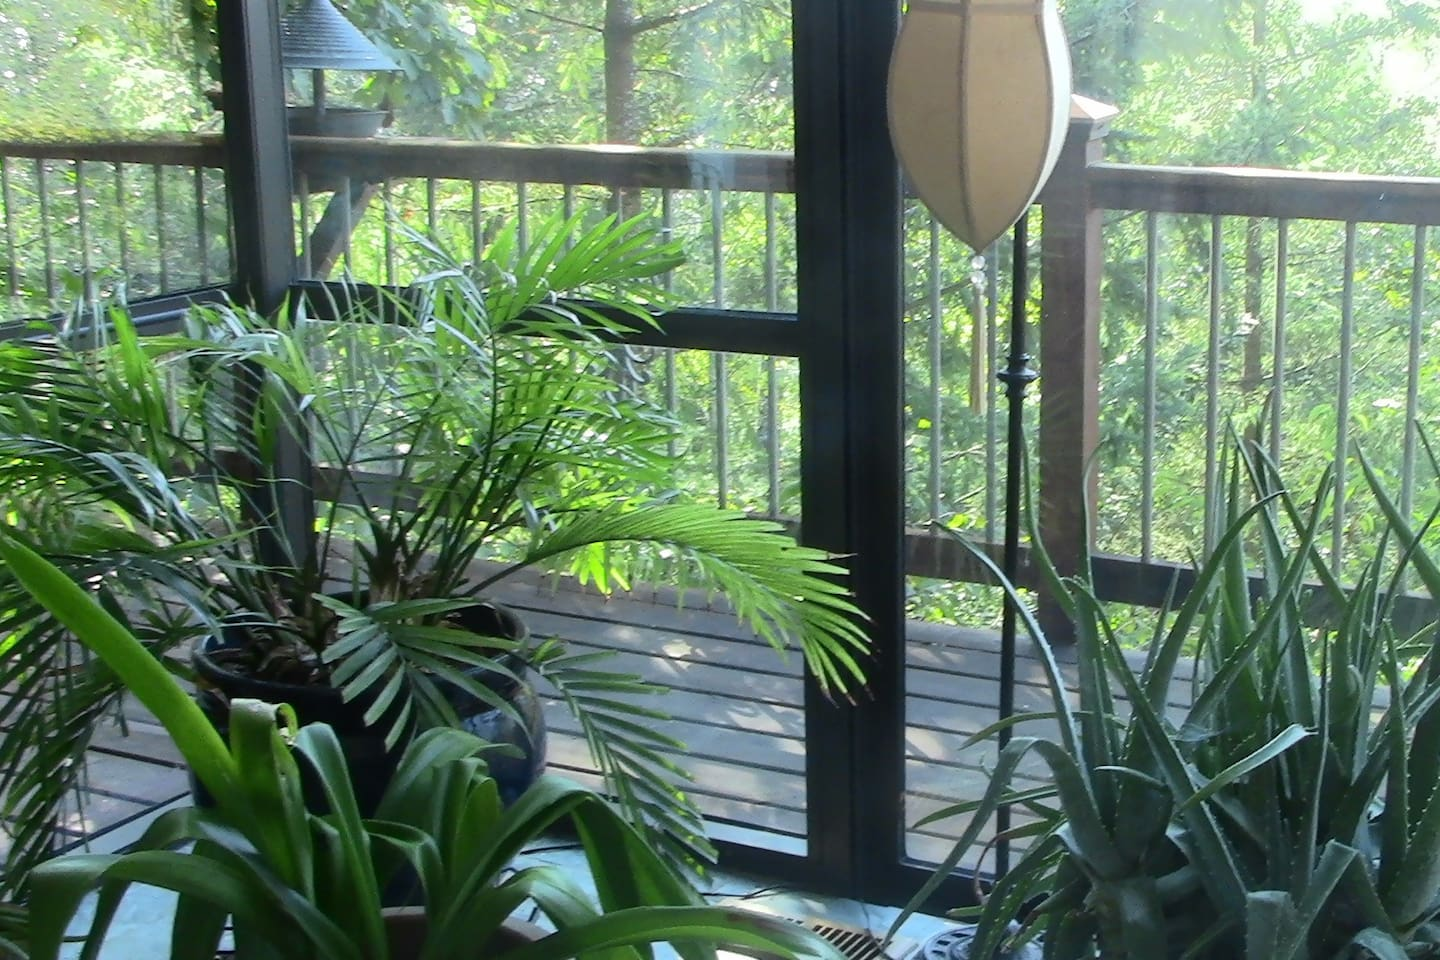 Condo has a private deck overlooking a natural, wooded back garden